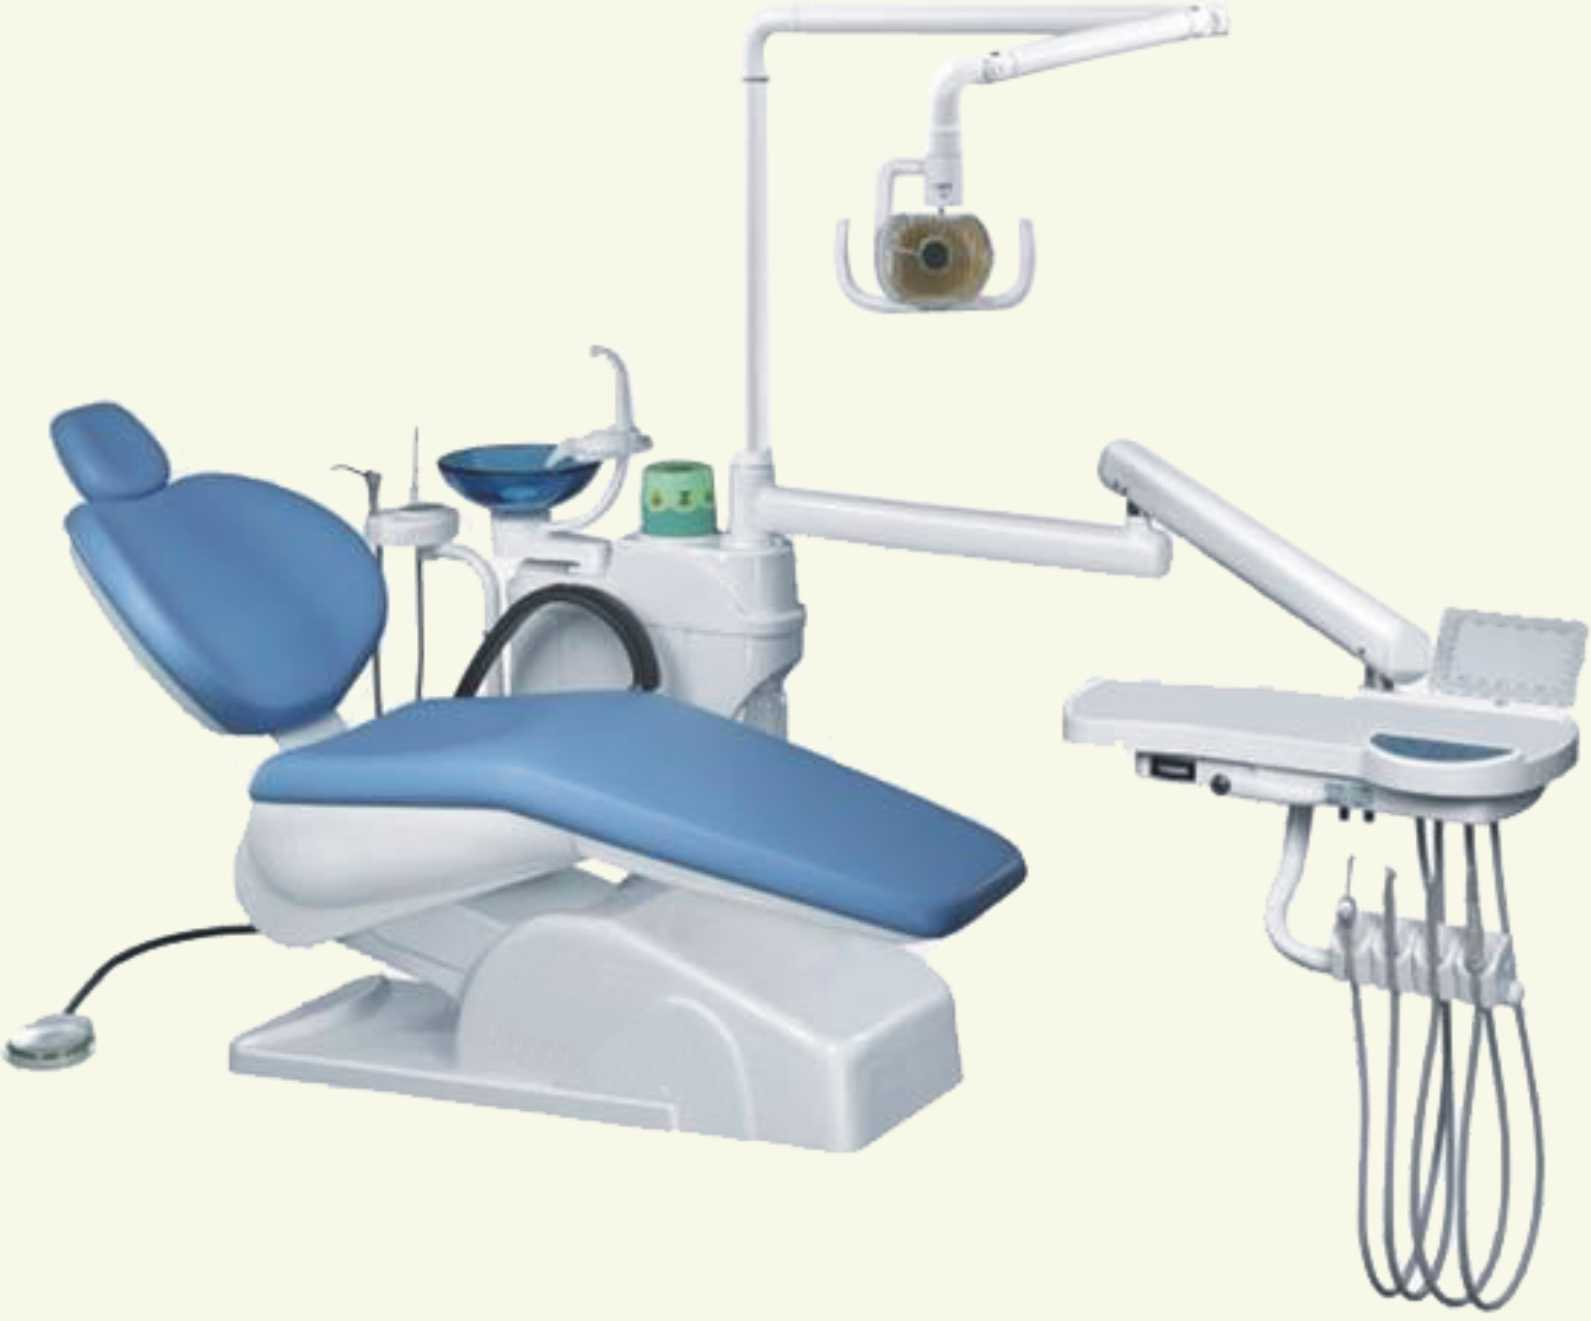 Sirona Dental Chair Price Sirona Dental Chair Price Suppliers and